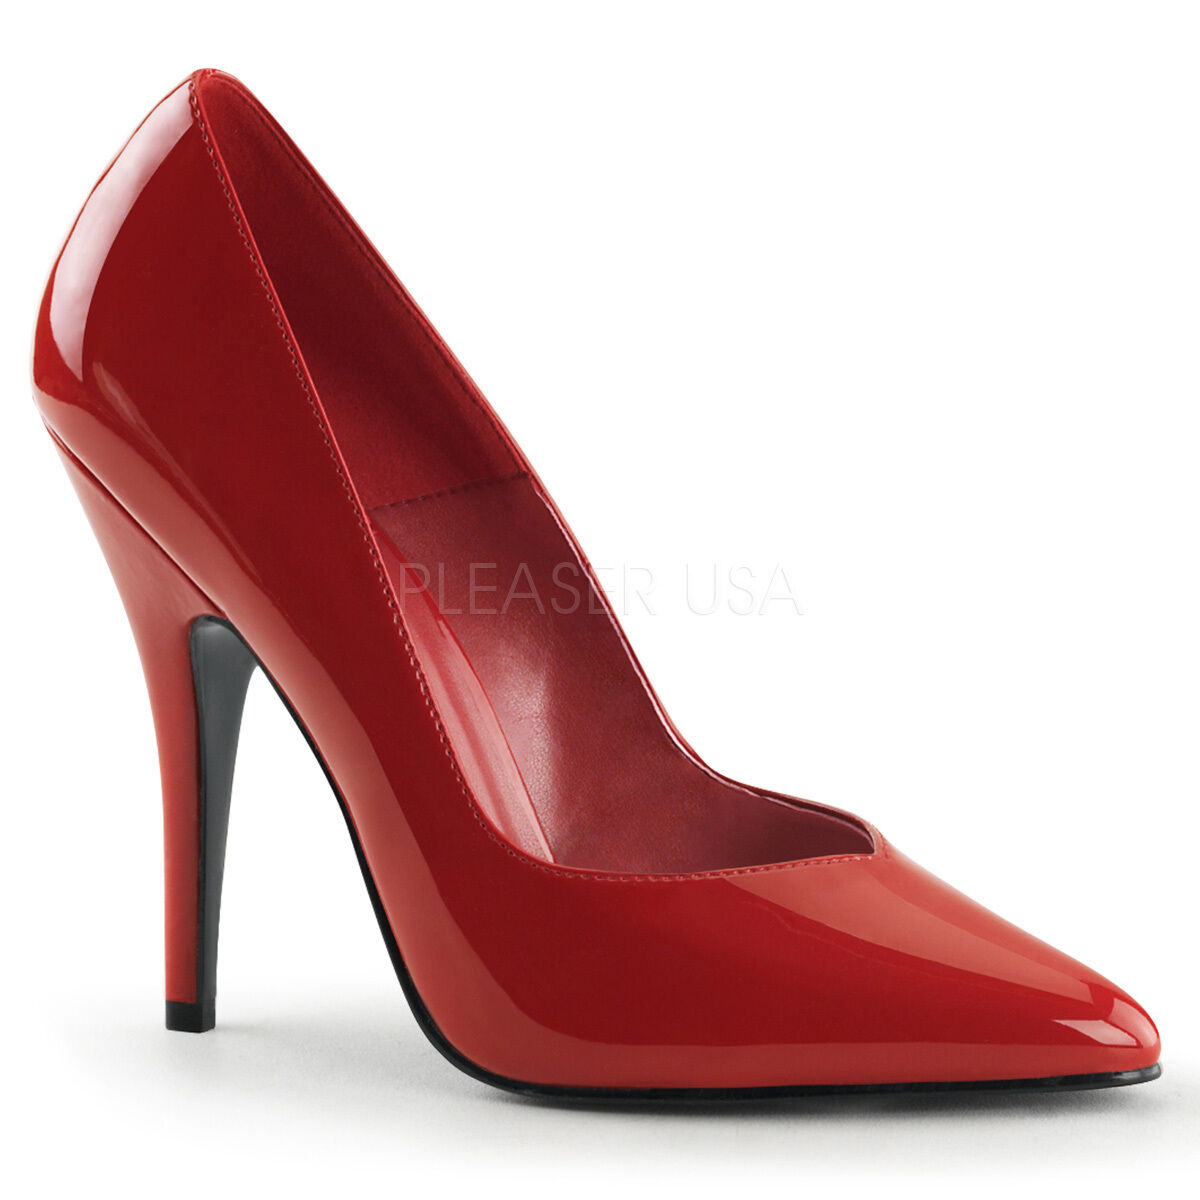 PLEASER 8220 R Sexy 5  High Heels Red Shiny Women's Classic Red Pumps shoes